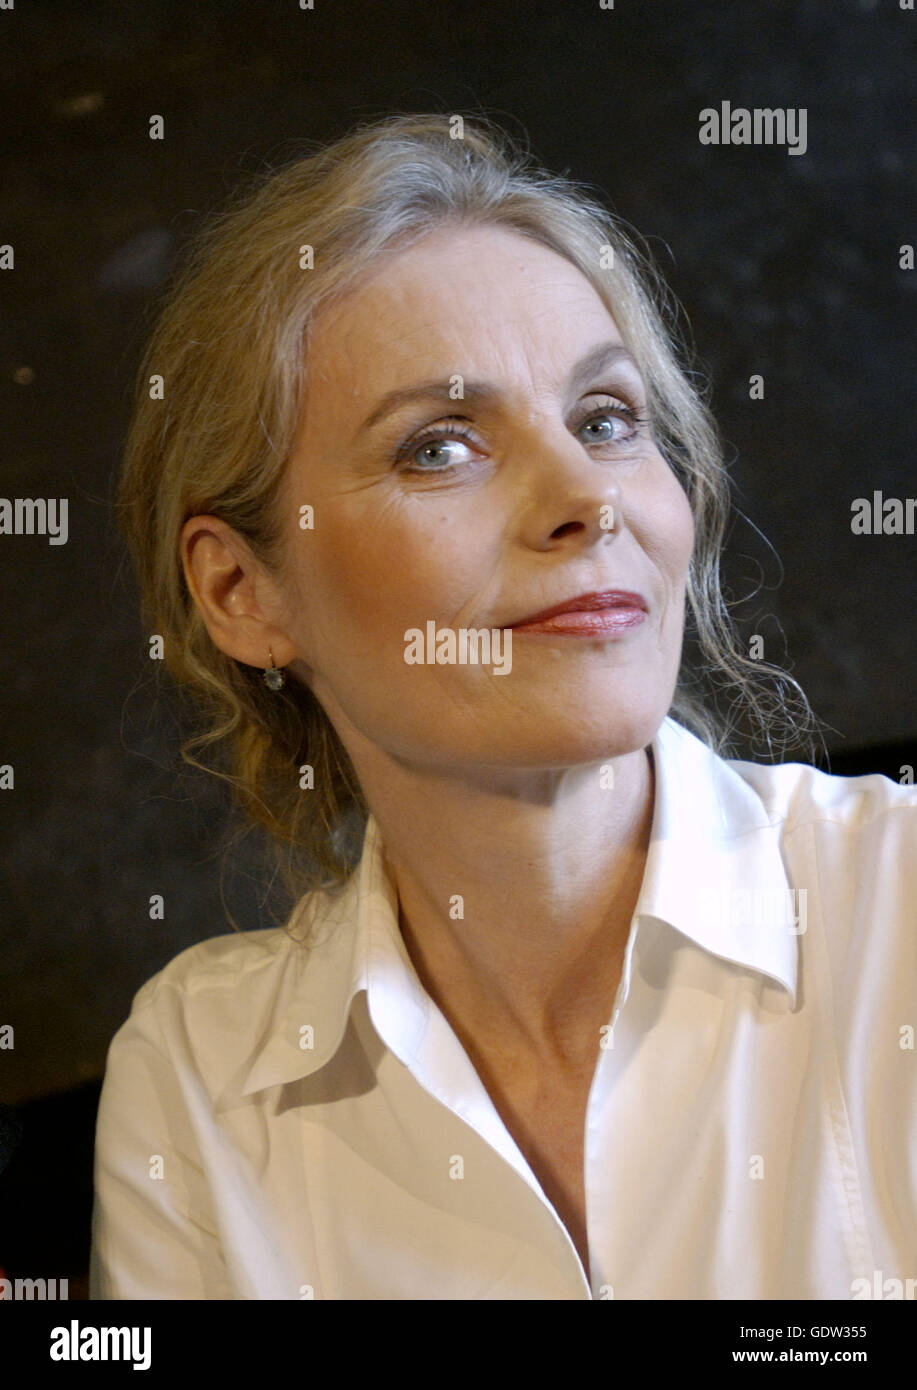 Kirsten Harms - Stock Image